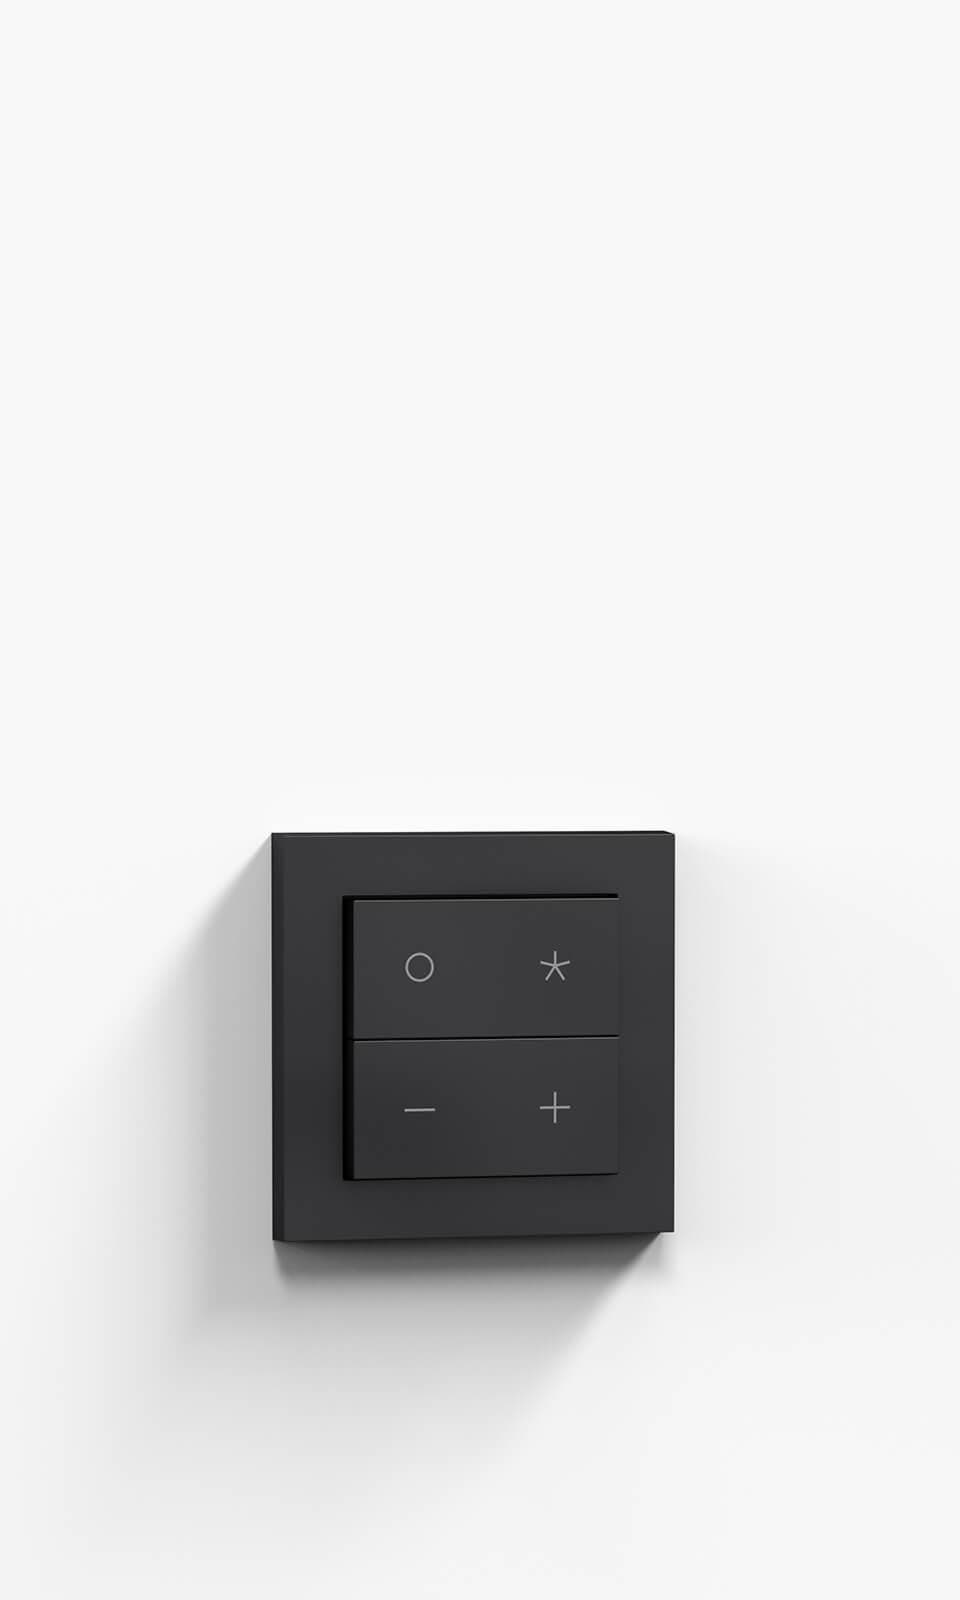 Senic Nuimo Click Simple Optical Switch Smart Home Control With The Of A